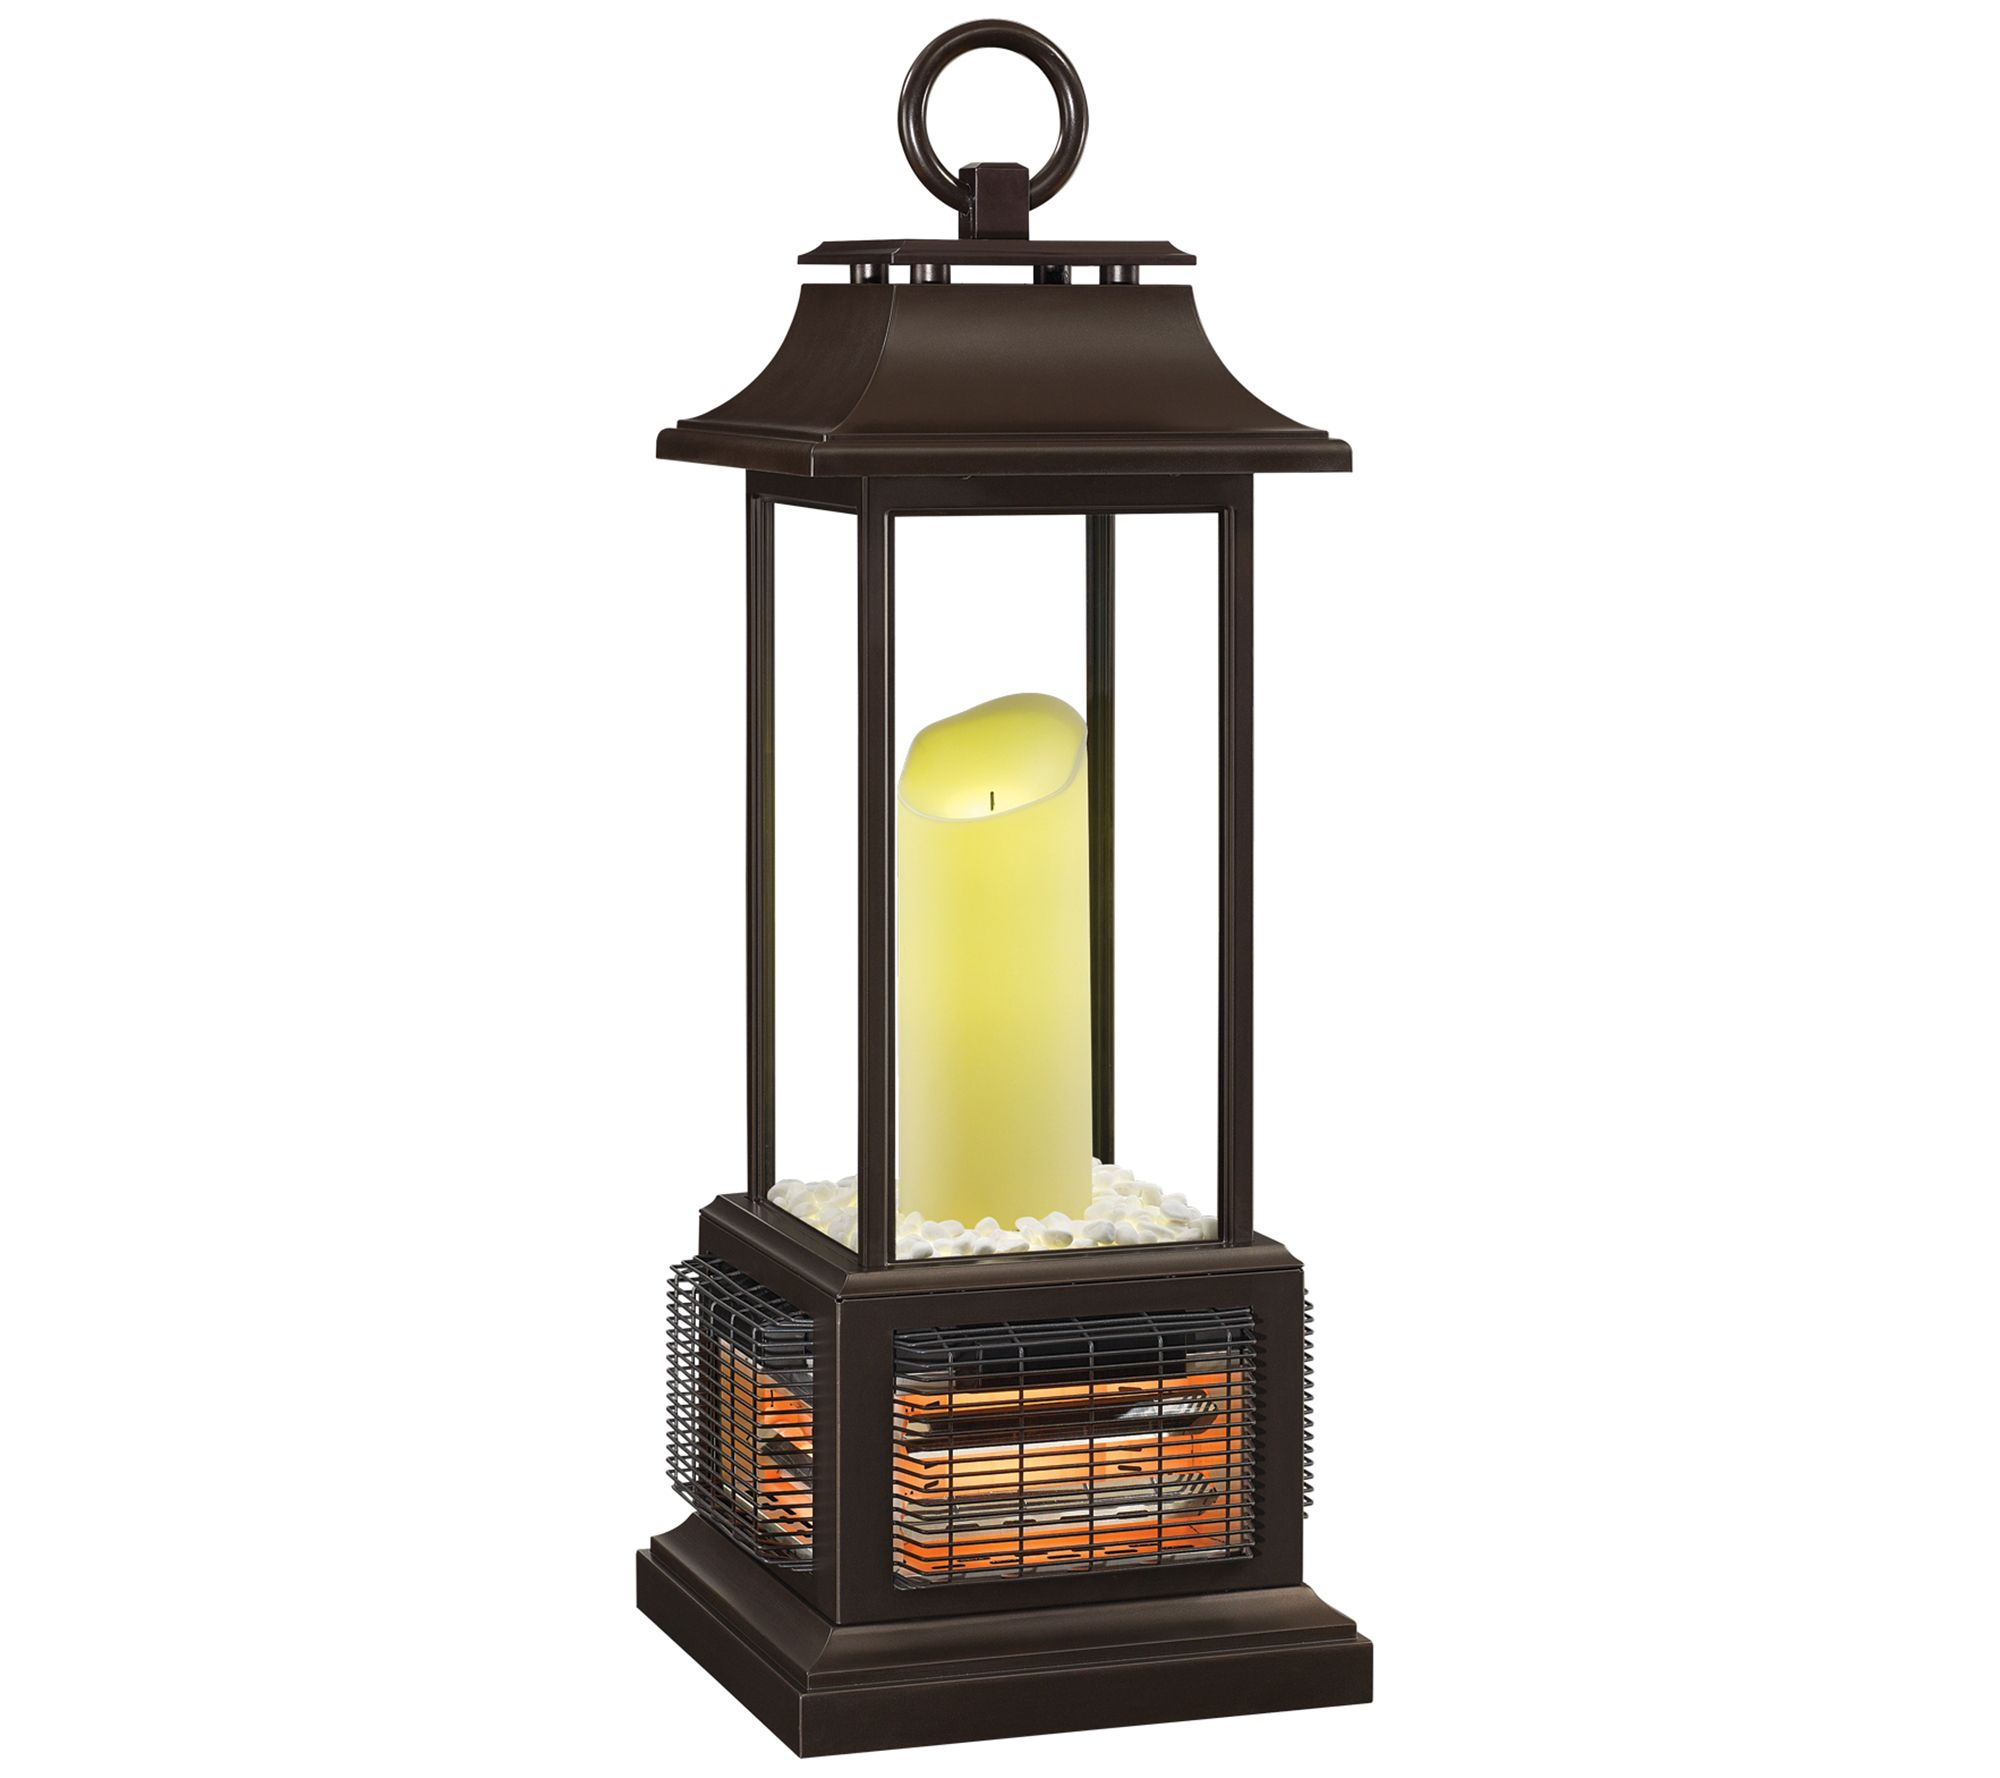 Duraflame Flameless Candle Infrared Outdoor Heater Lantern - Page ...